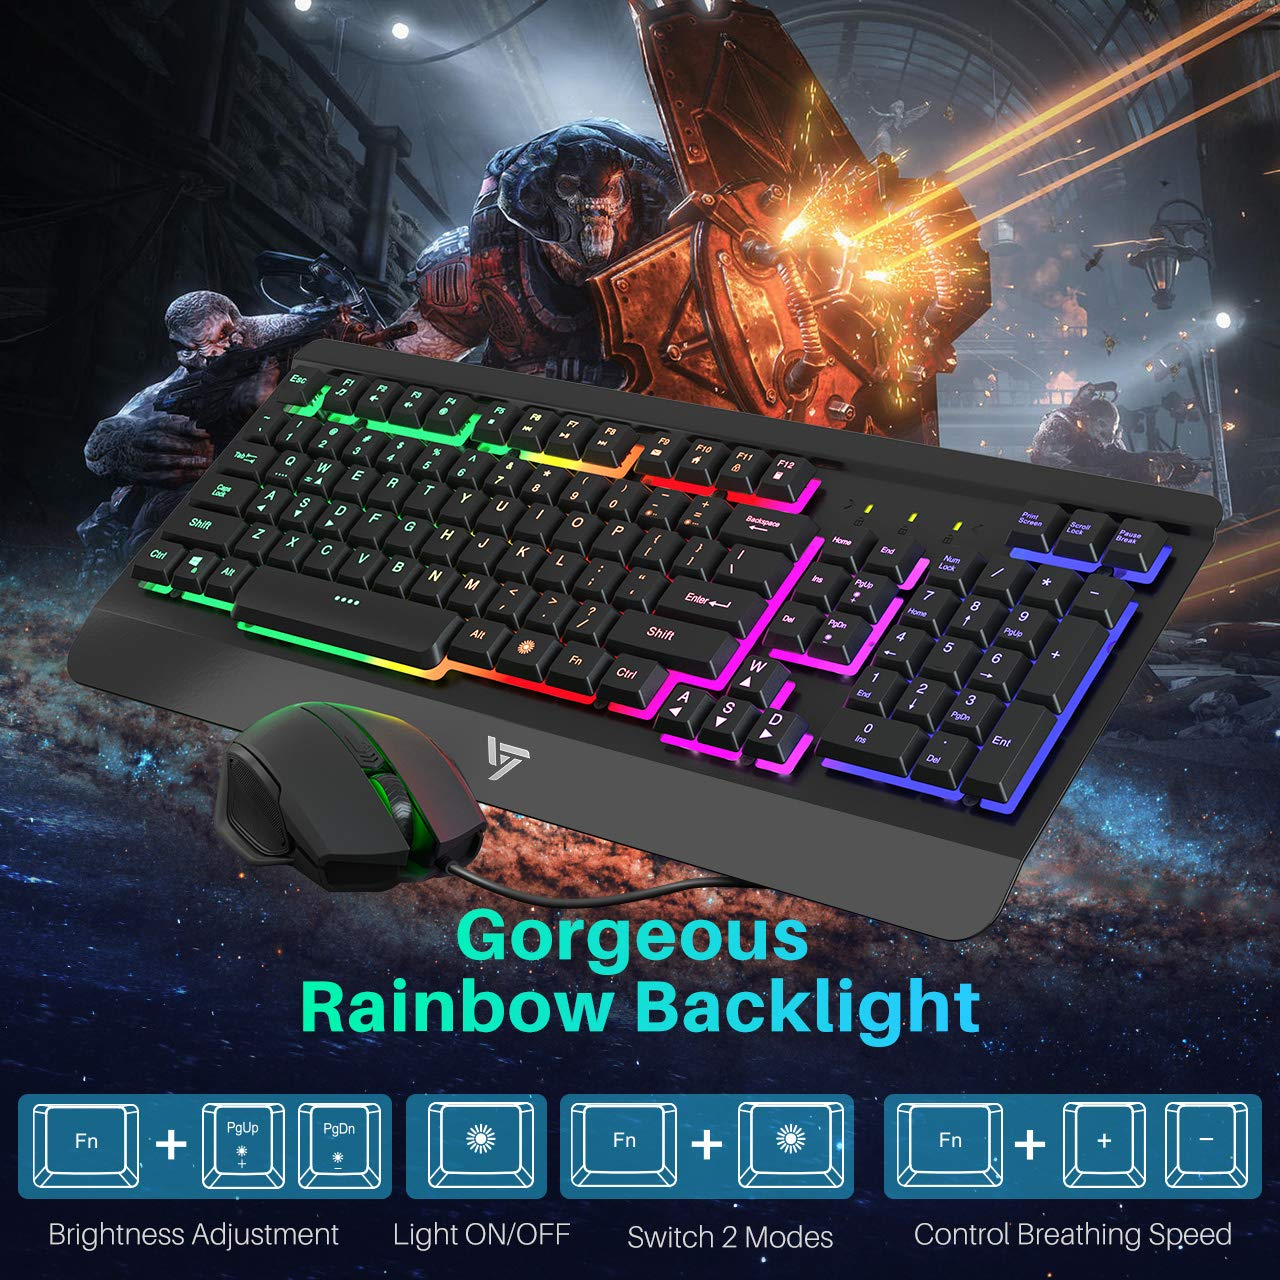 VicTsing Gaming Keyboard Mouse Combo, Ultra-Slim Rainbow LED Backlit Keyboard with Ergonomic Wrist Rest, Programmable 6 Button Mouse for Windows PC Gamer, Spill-Resistant Design - Black by VicTsing (Image #1)